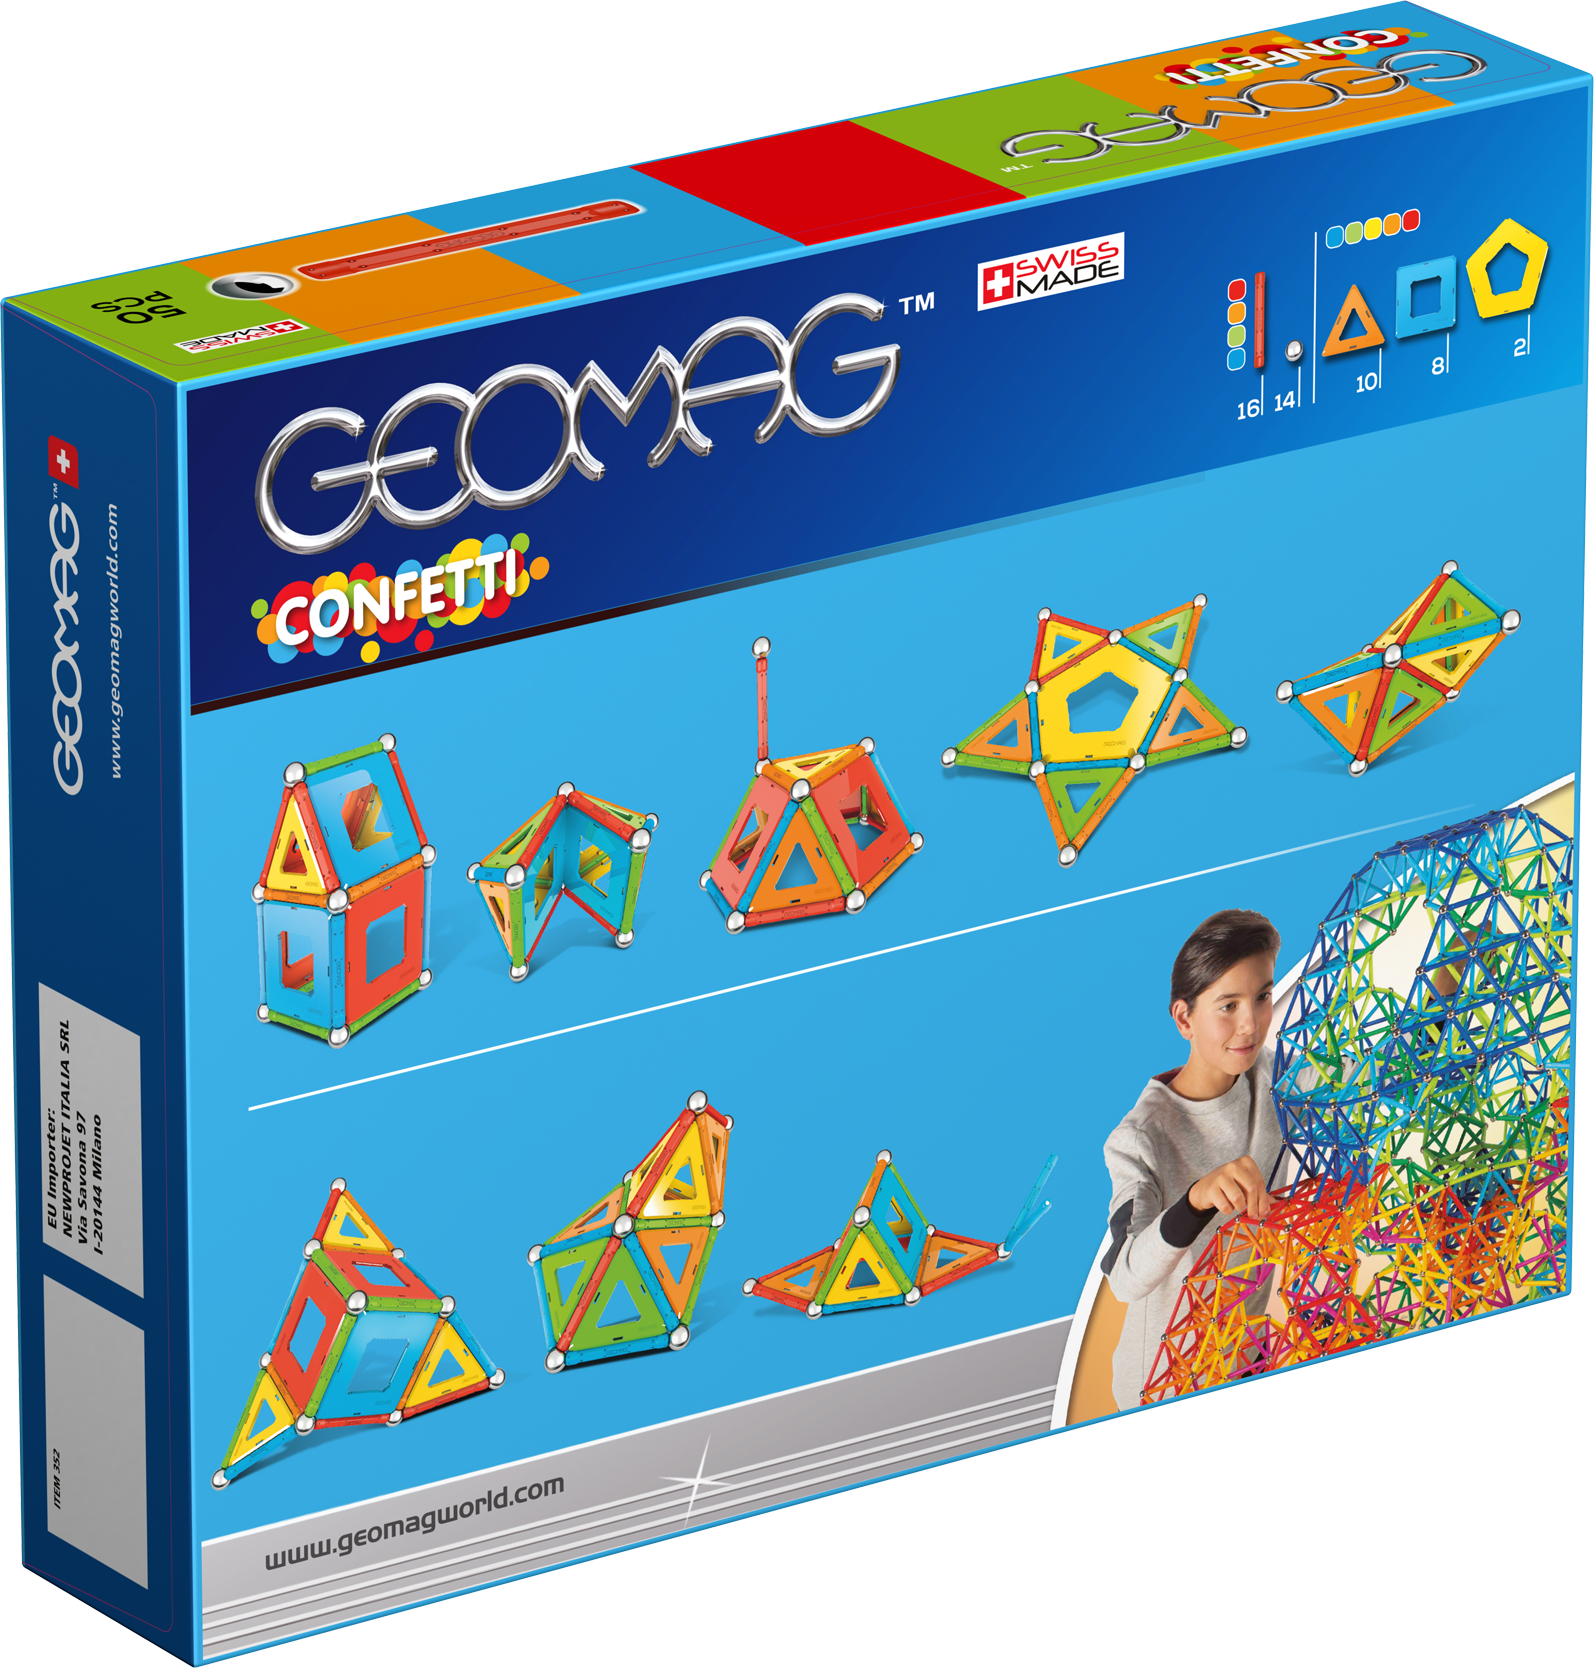 Geomag-Classic-Confetti-50_2.png